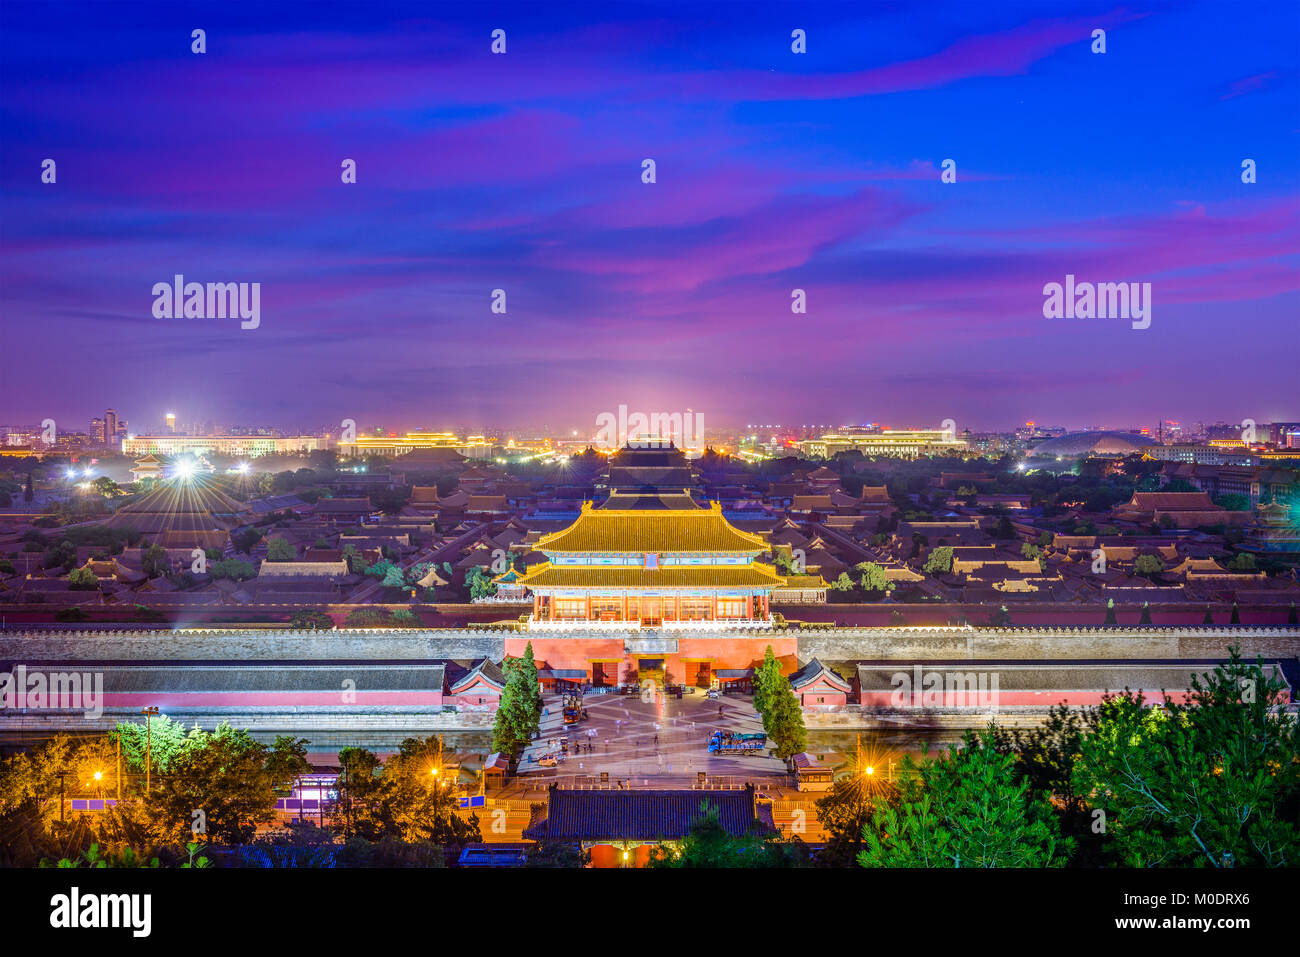 Beijing, China forbidden city outer wall and gate. - Stock Image